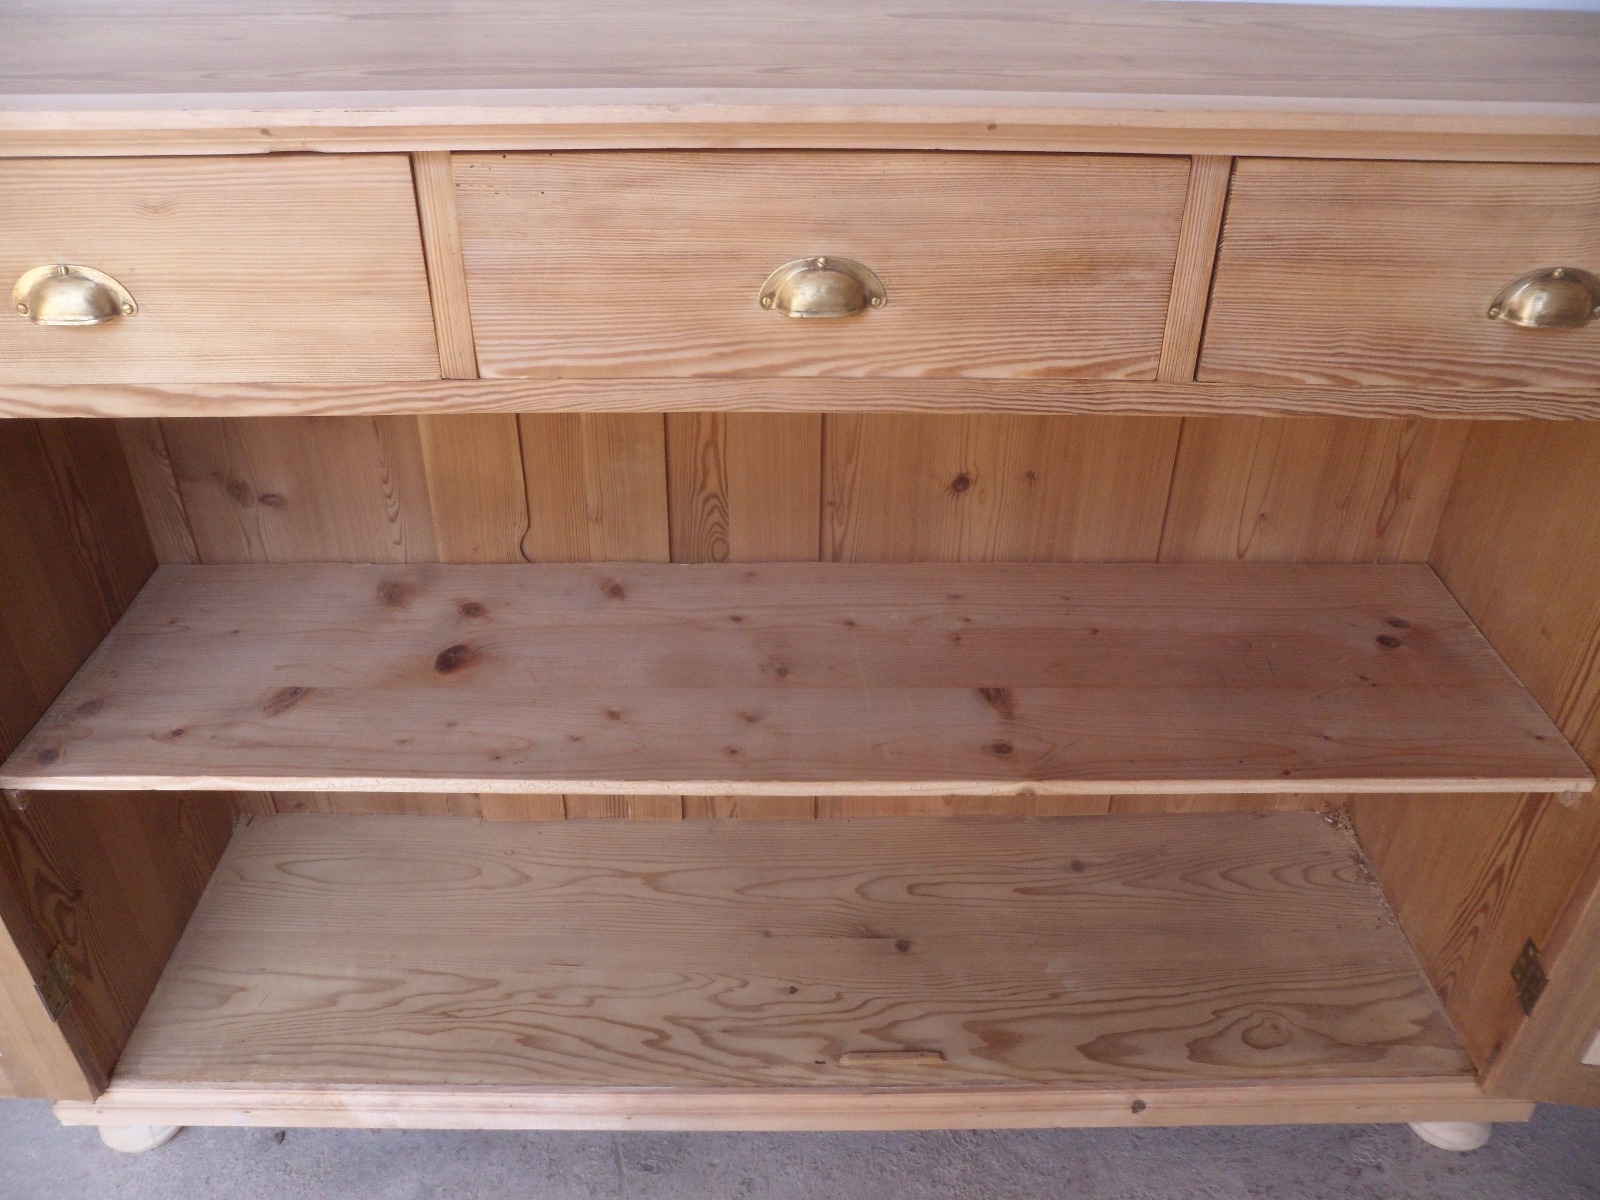 Large Narrow Old Pine 2 Door 3 Drawer Kitchen Dresser Base To Wax Regarding Most Up To Date Aged Pine 3 Drawer 2 Door Sideboards (View 13 of 20)